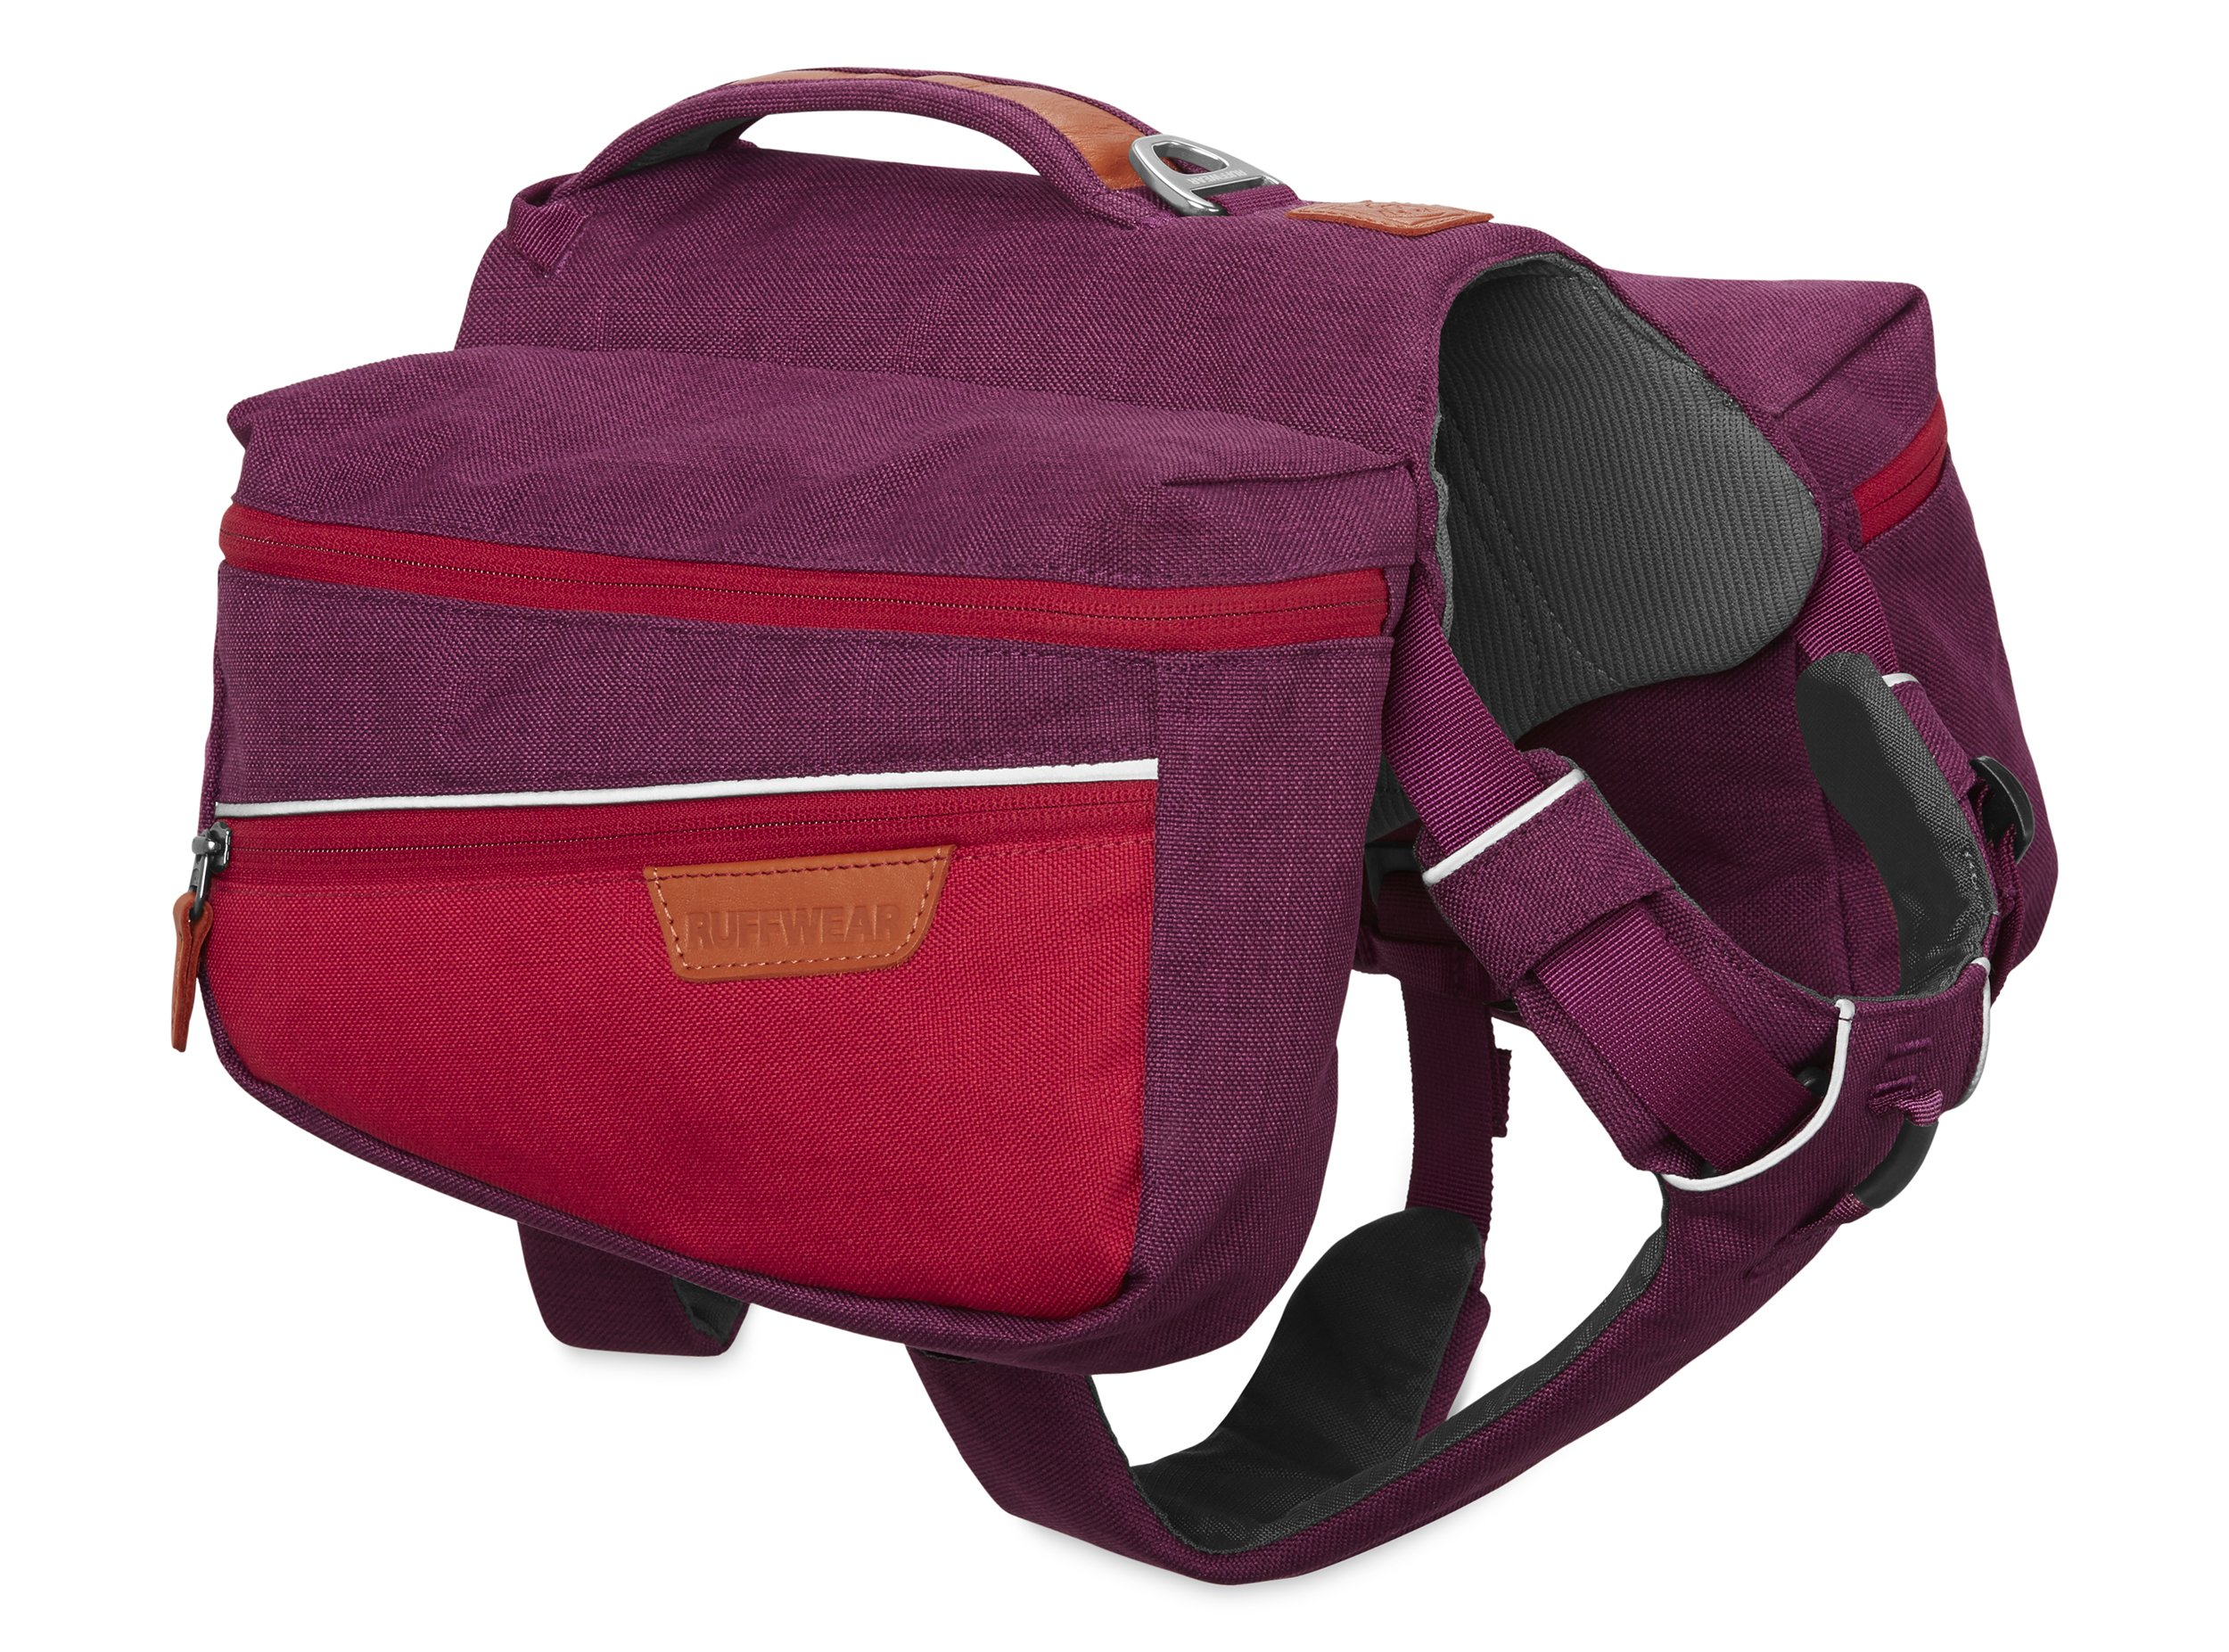 Ruffwear - Commuter Everyday Pack for Dogs, Larkspur Purple, Small